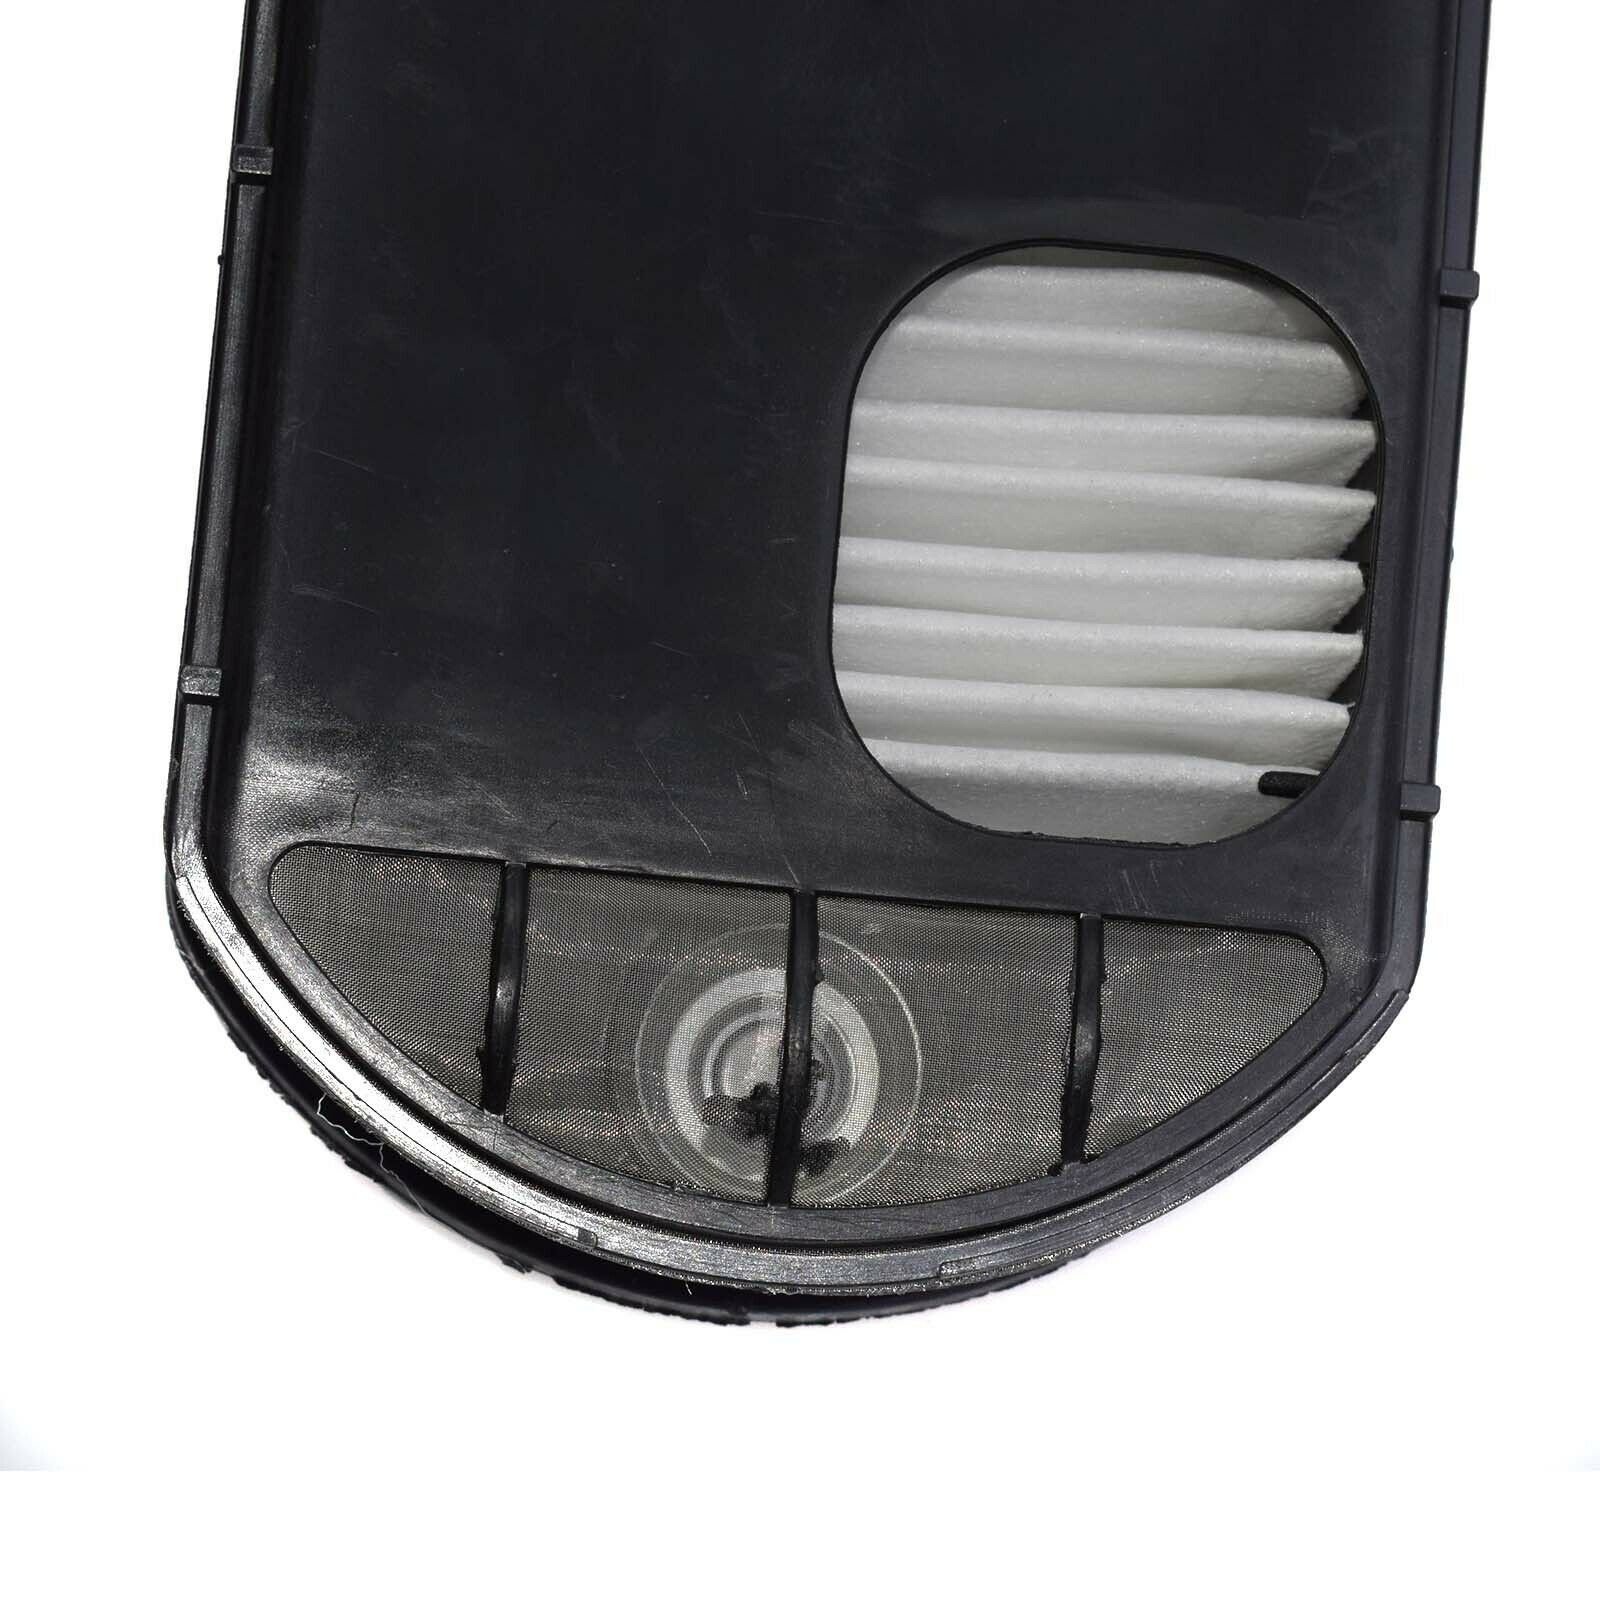 8C3Z7A098D Automatic Transmission Filter For Ford 6.4L Powerstroke 2008-2010